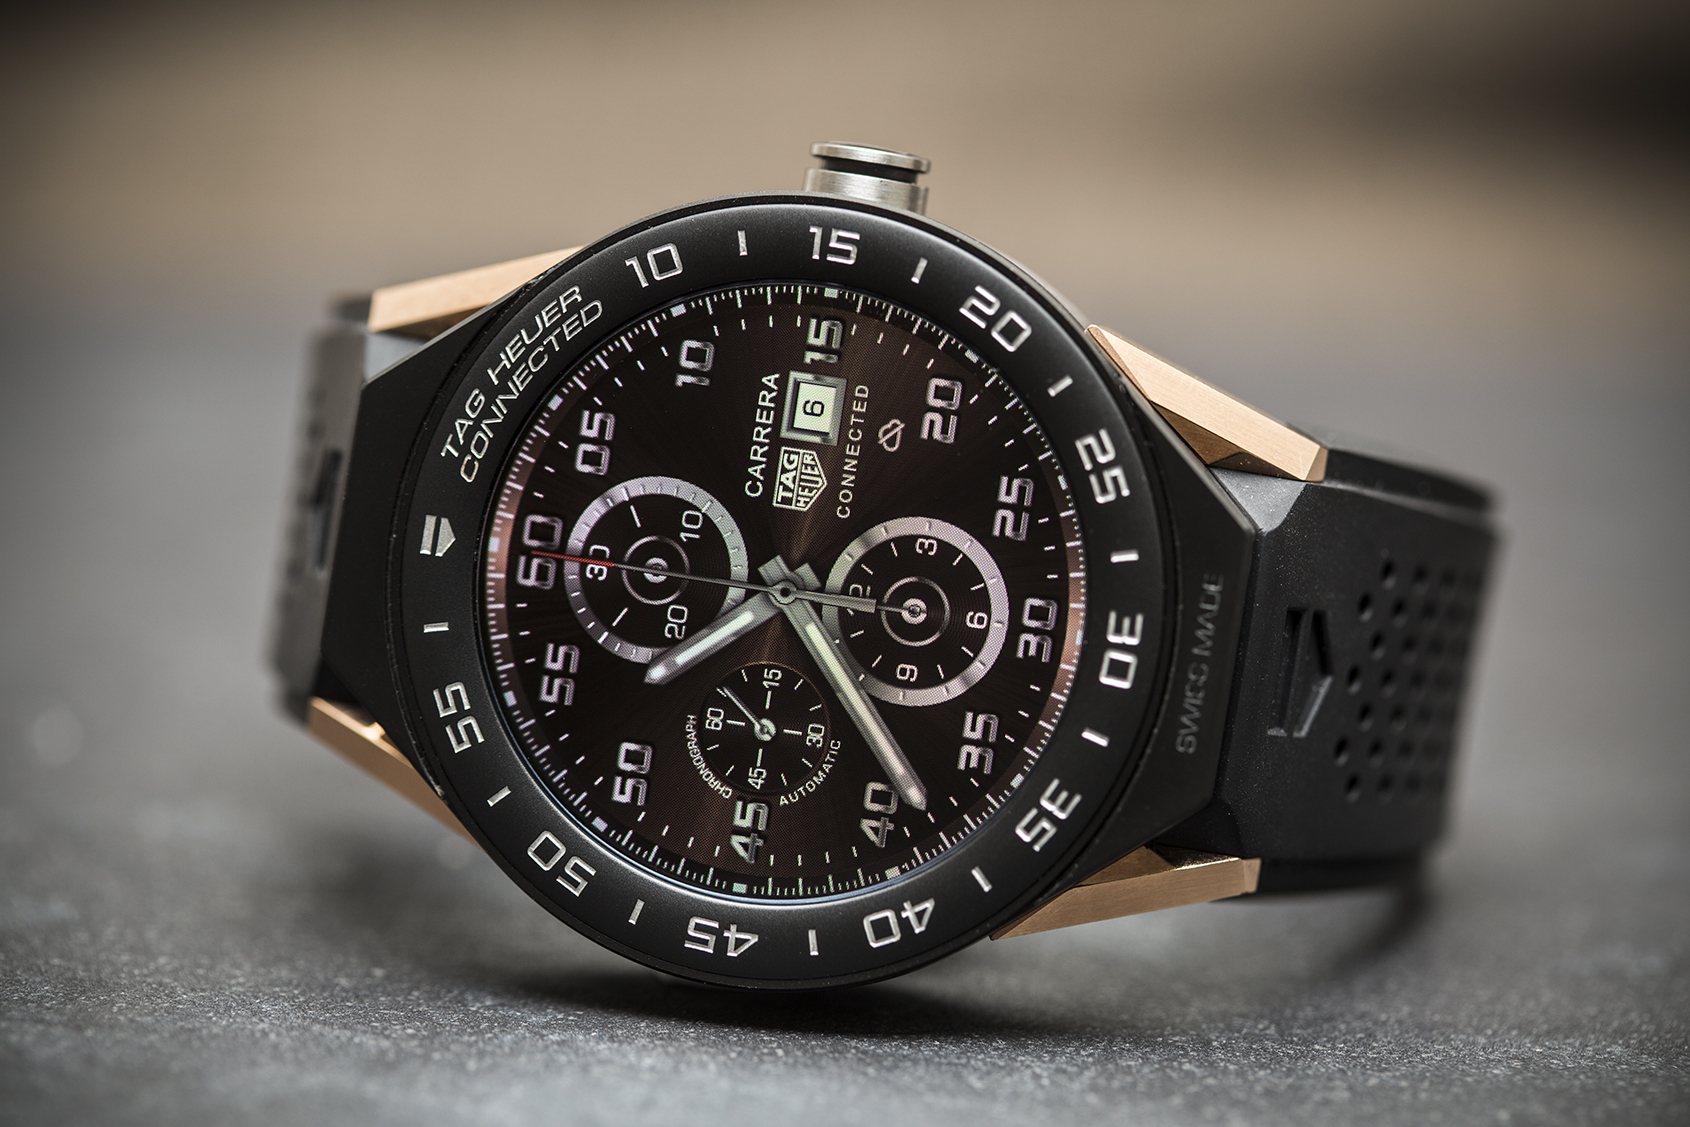 Hands On The Tag Heuer Connected Modular 45 Time And